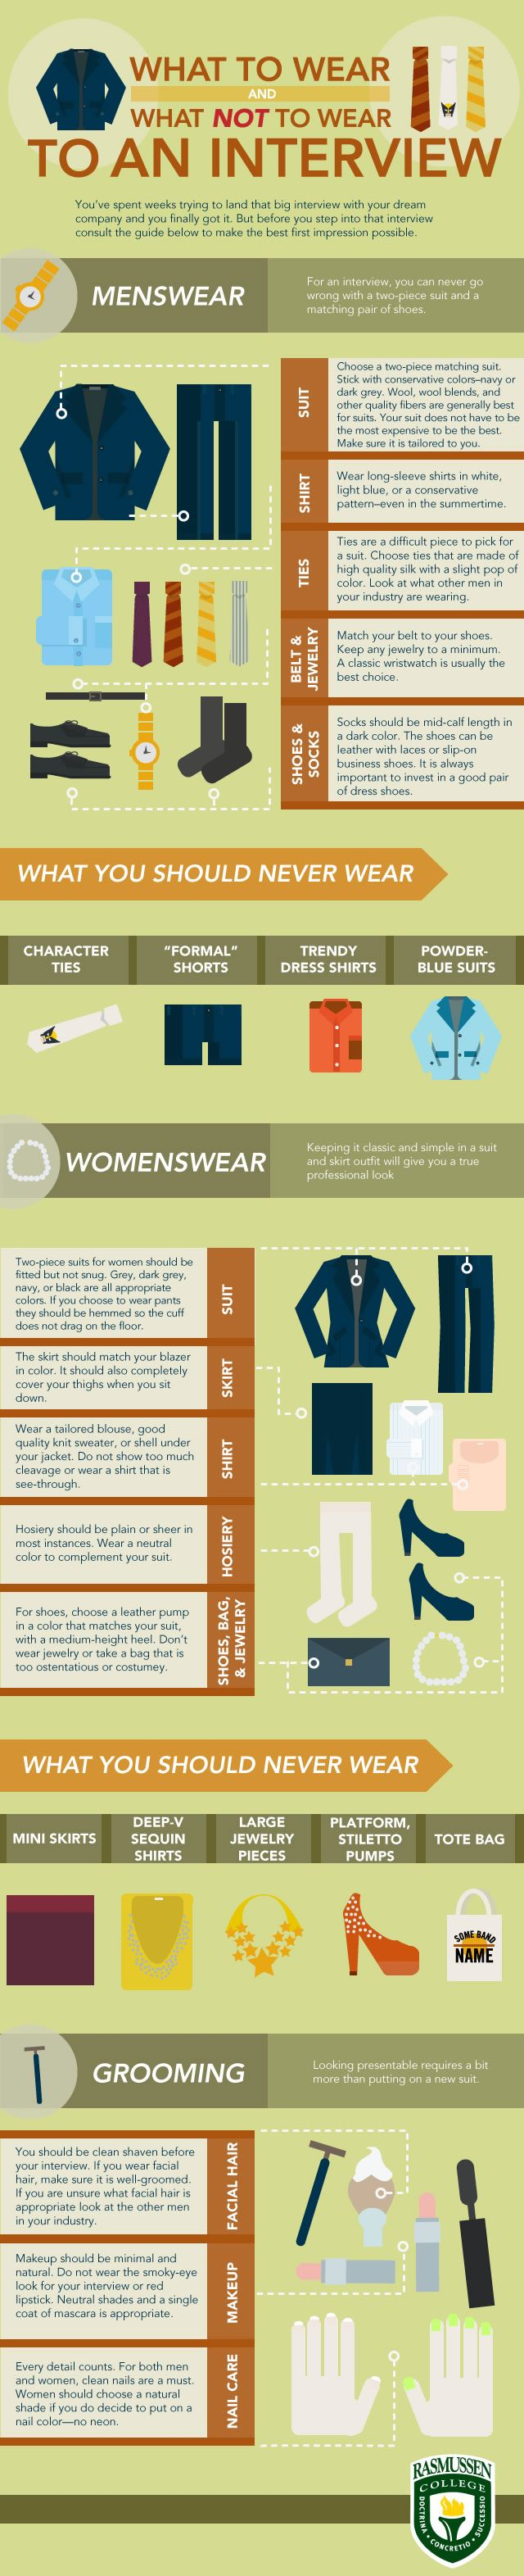 best images about interview tips and outfits for plus size 17 best images about interview tips and outfits for plus size women on interview clothing and work outfits